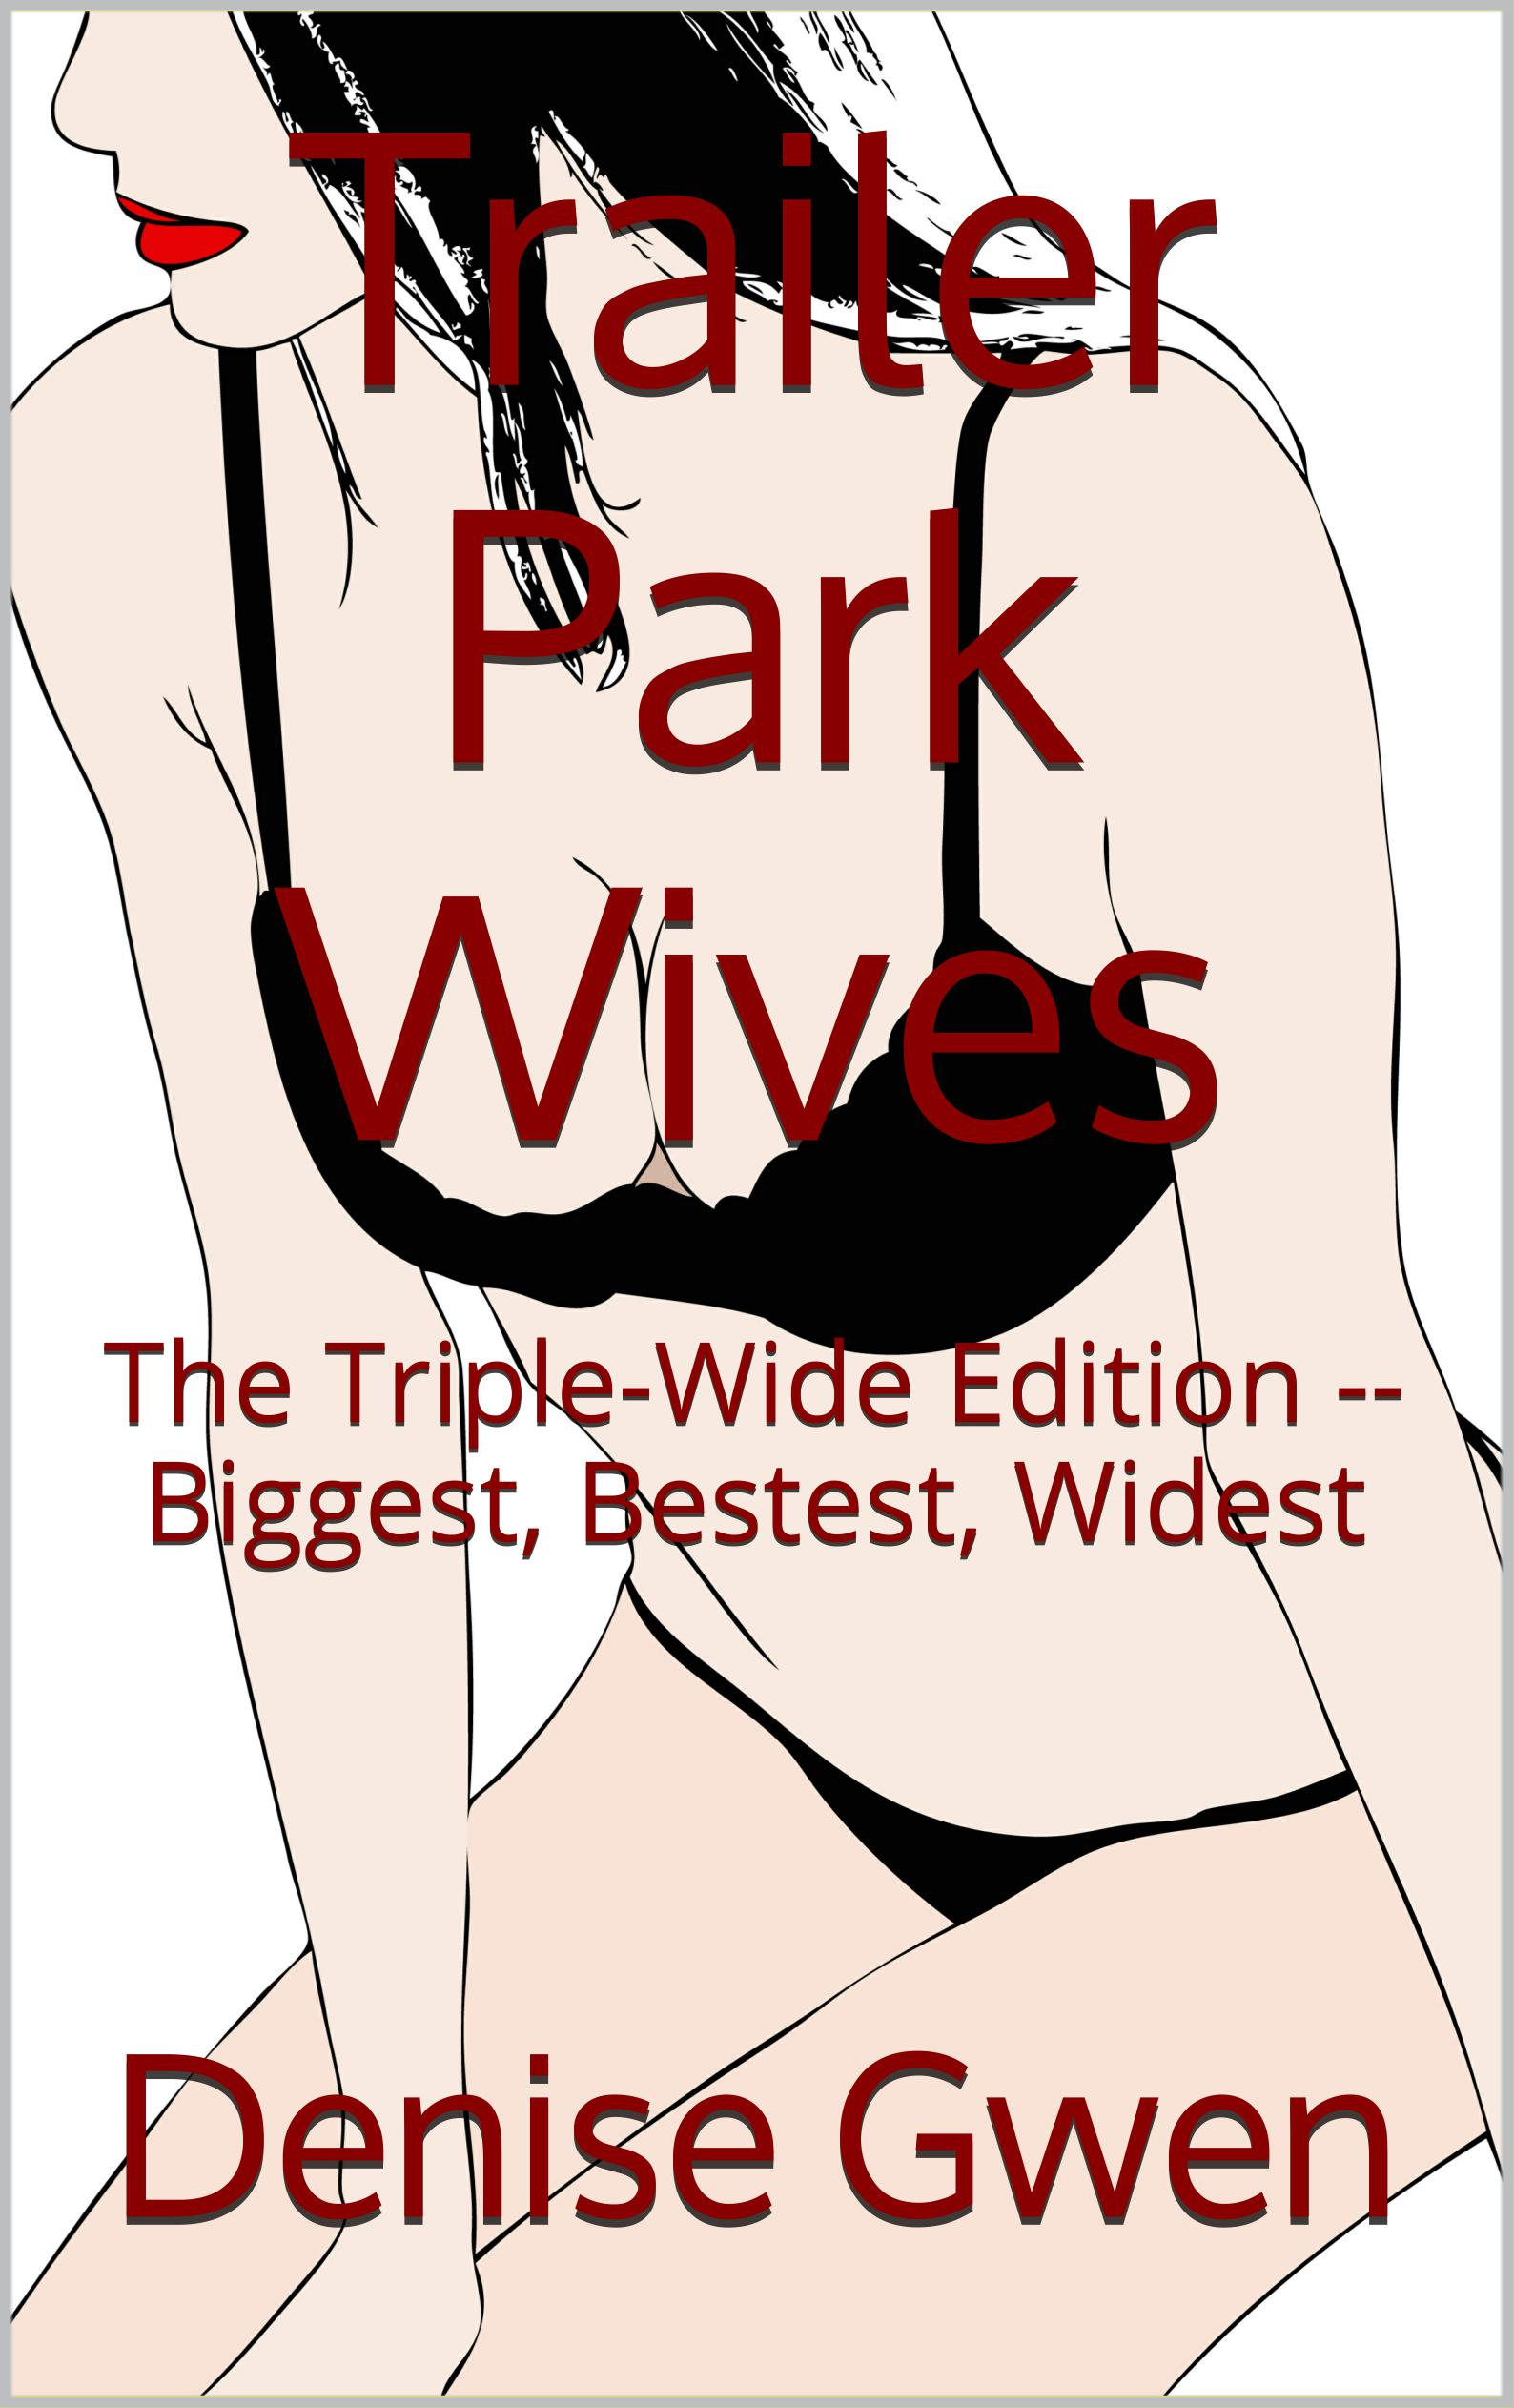 Part Three: Trailer Park Wives -- The Triple-Wide Edition